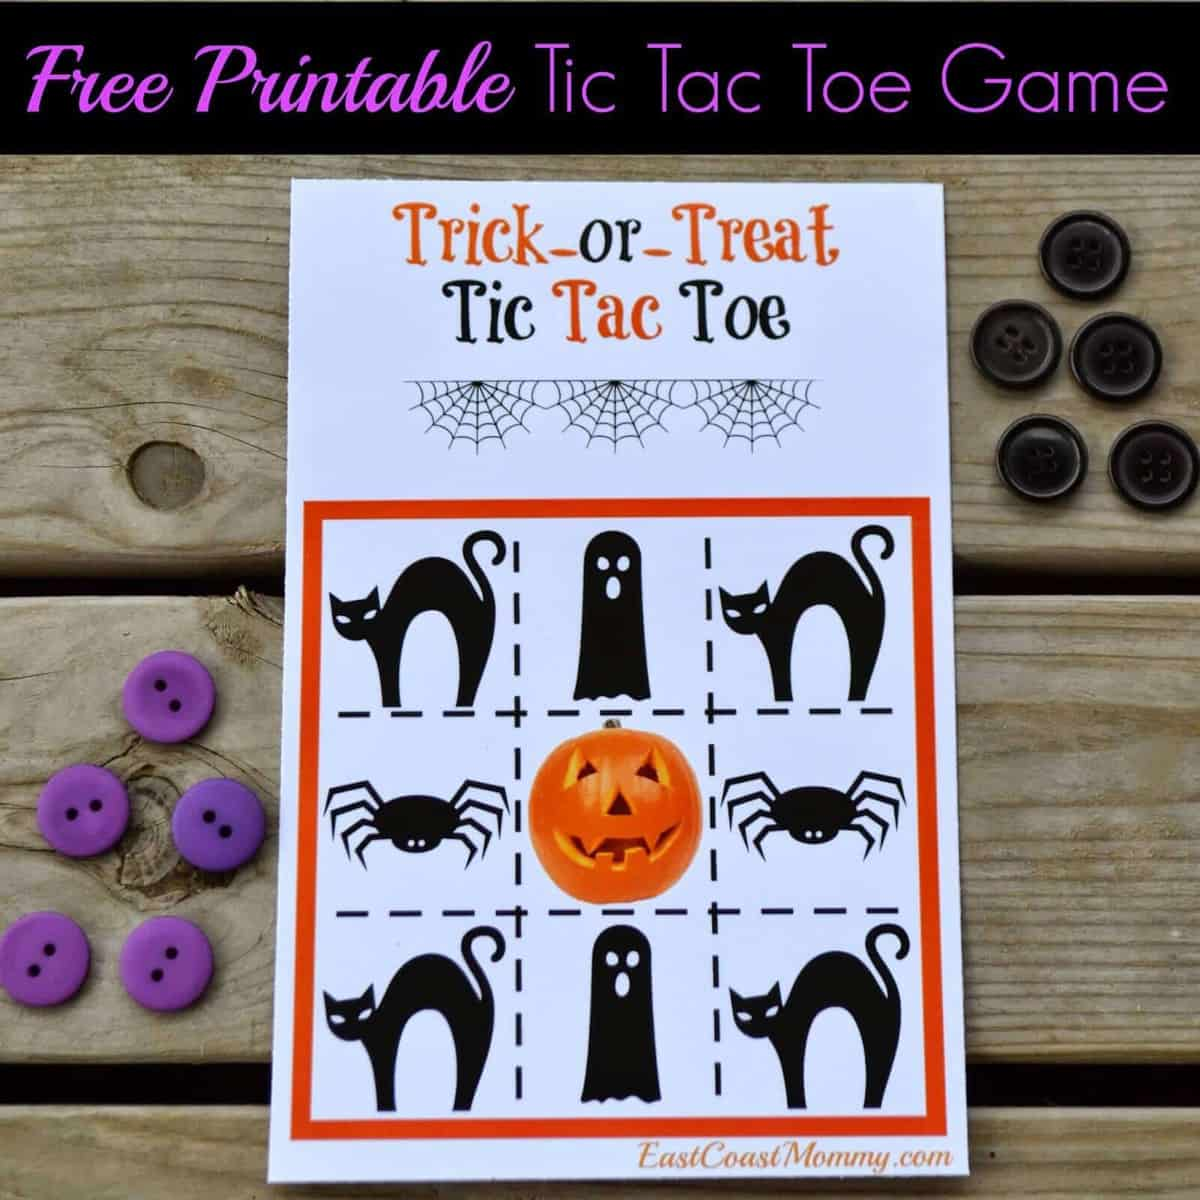 Free Printable Halloween Tic Tac Toe by East Coast Mommy